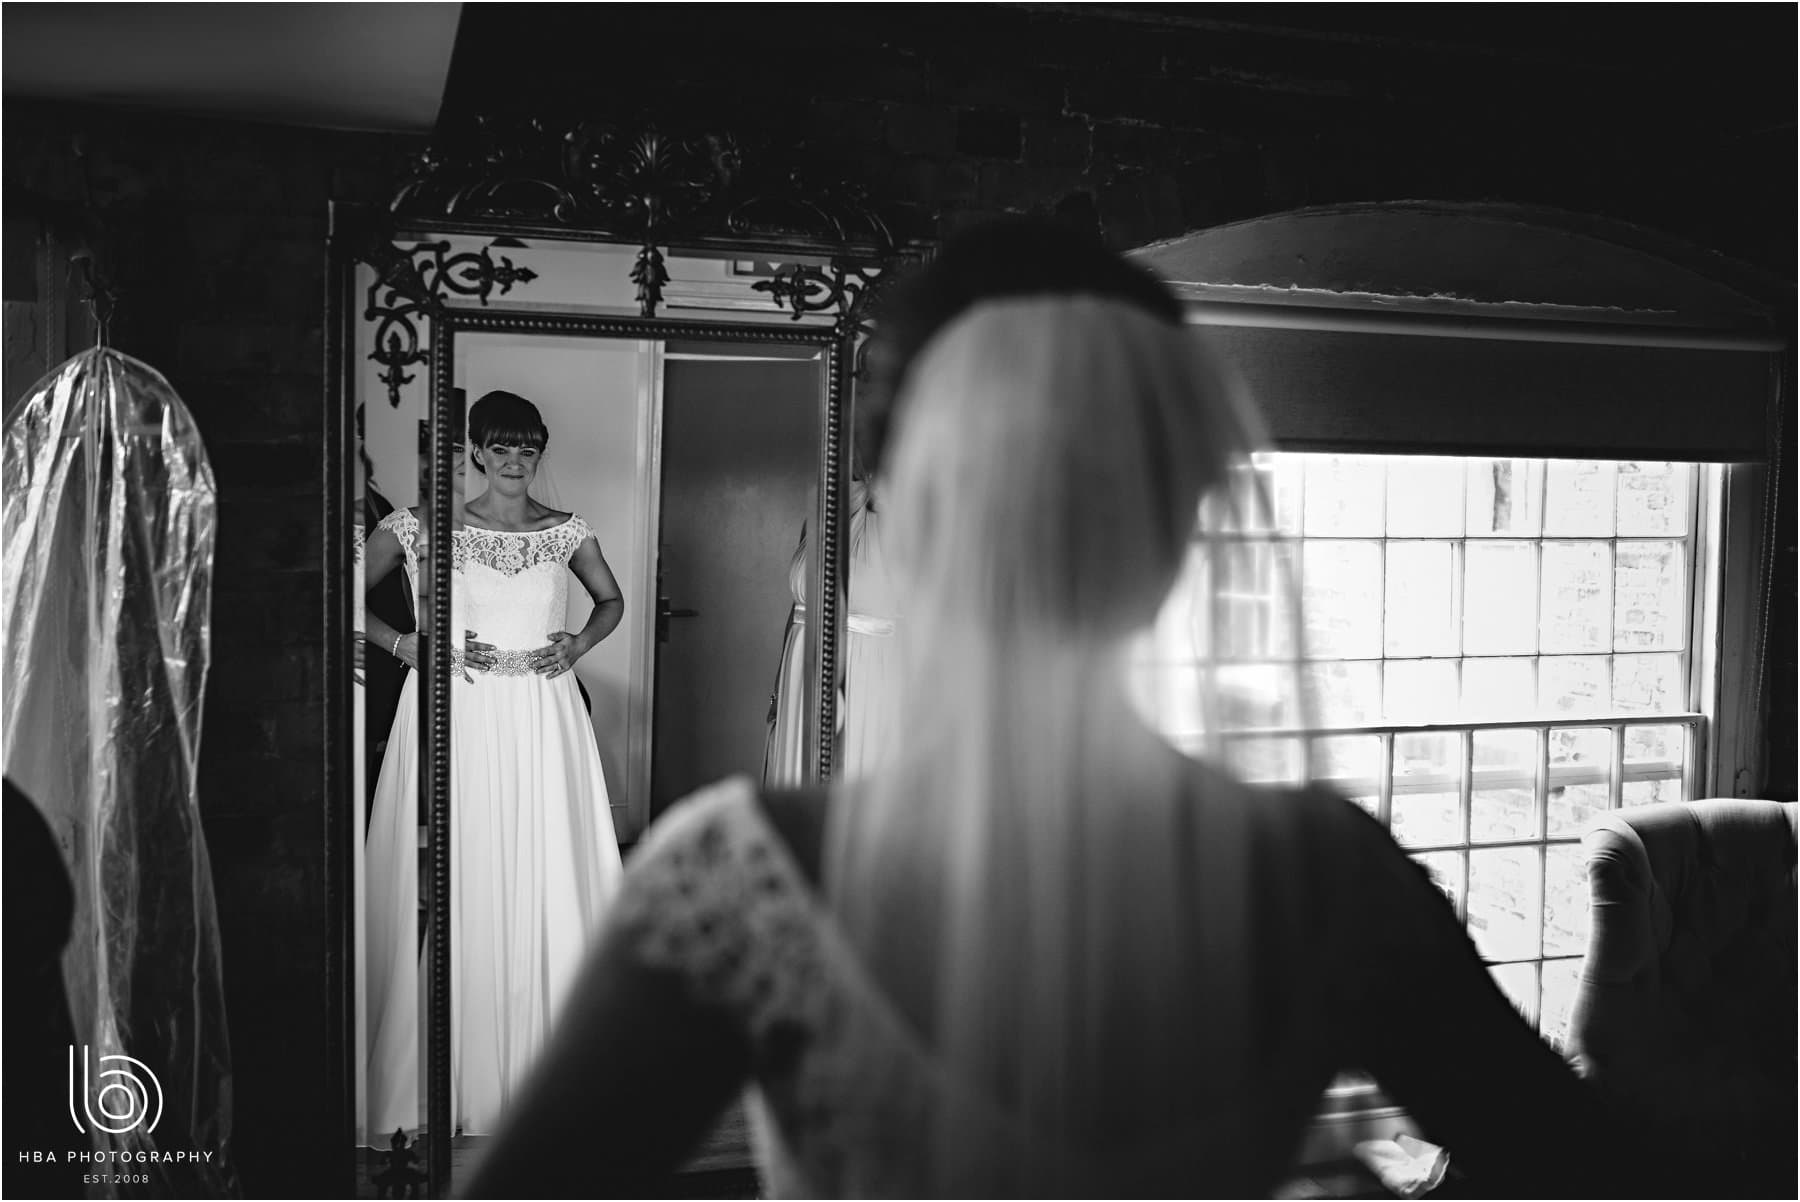 The bride in the mirror